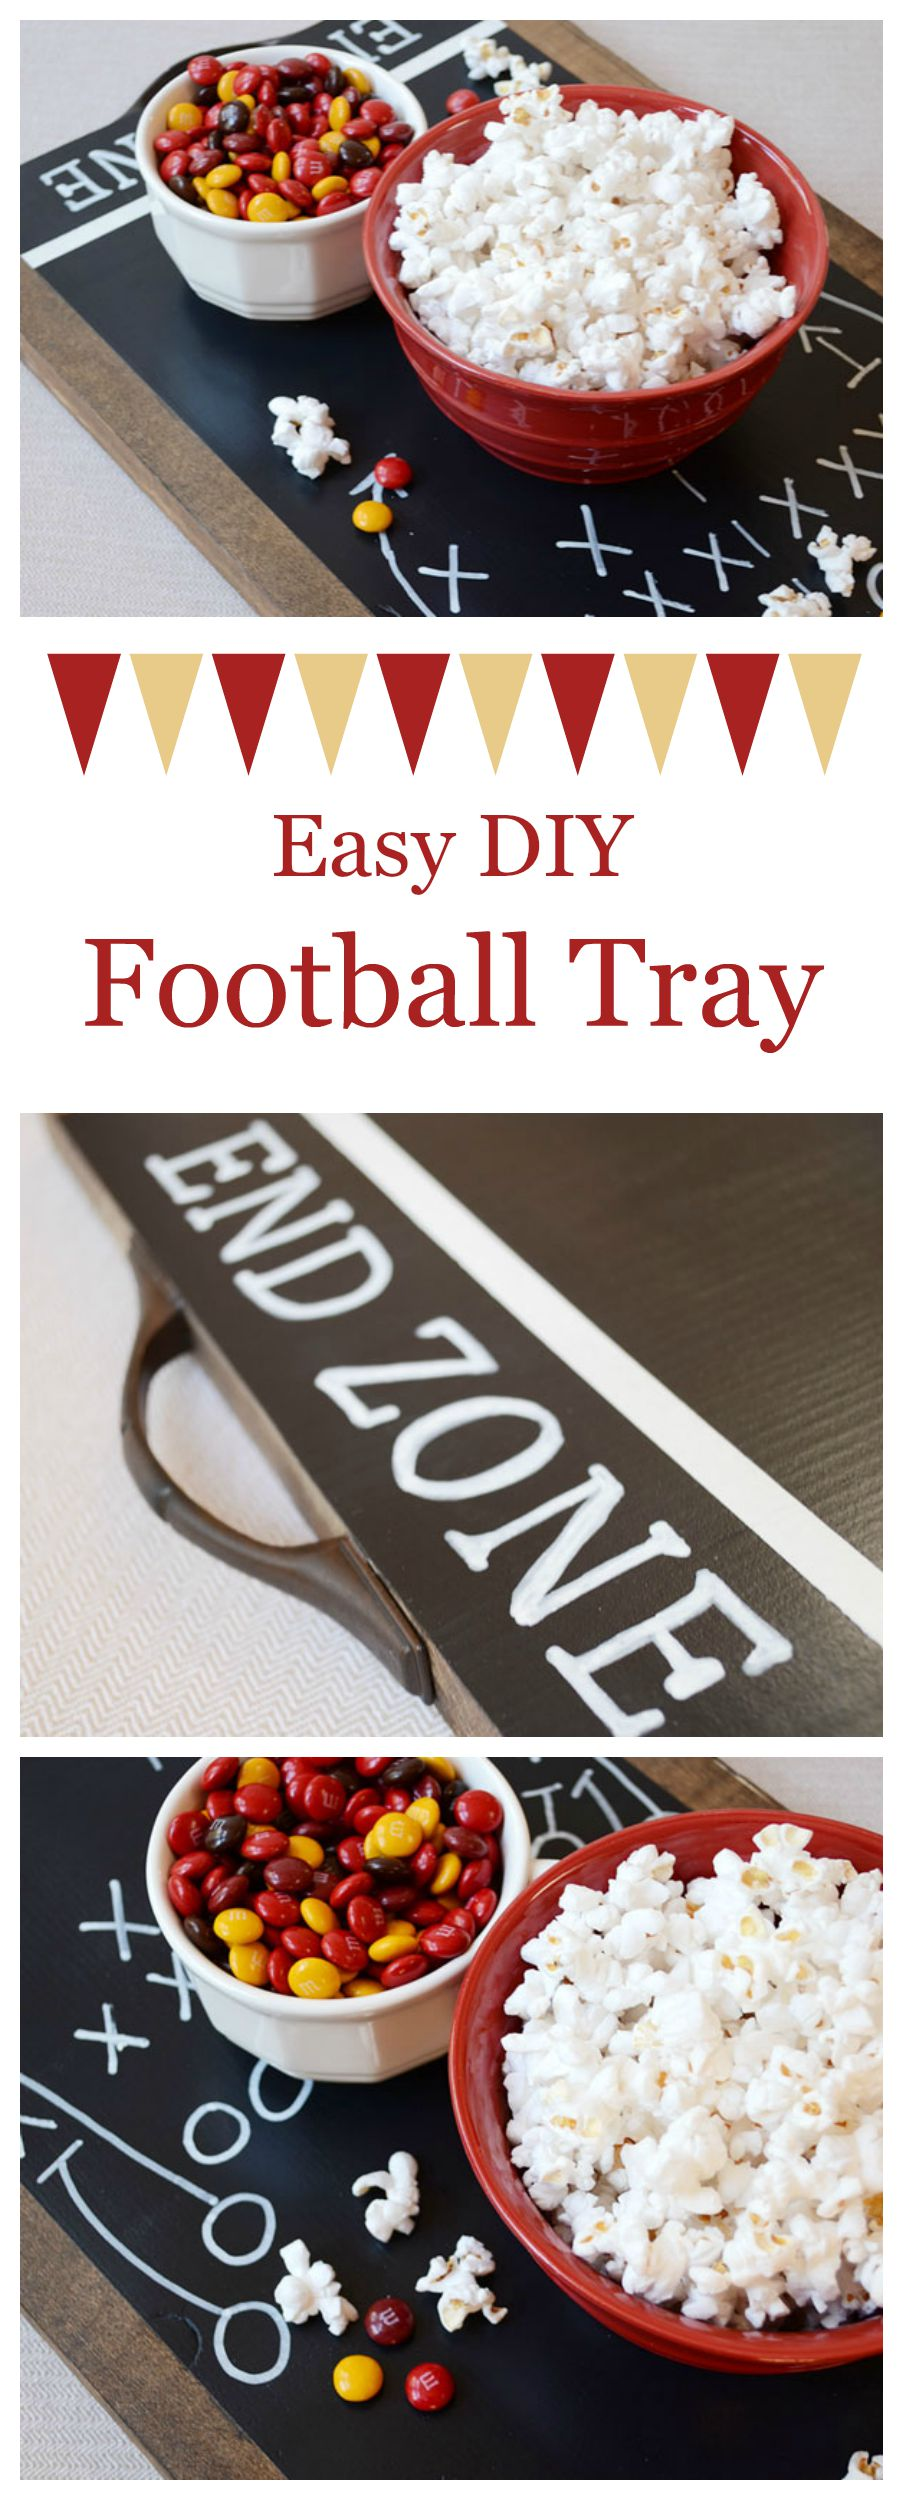 Easy DIY Football Tray | Storypiece.net